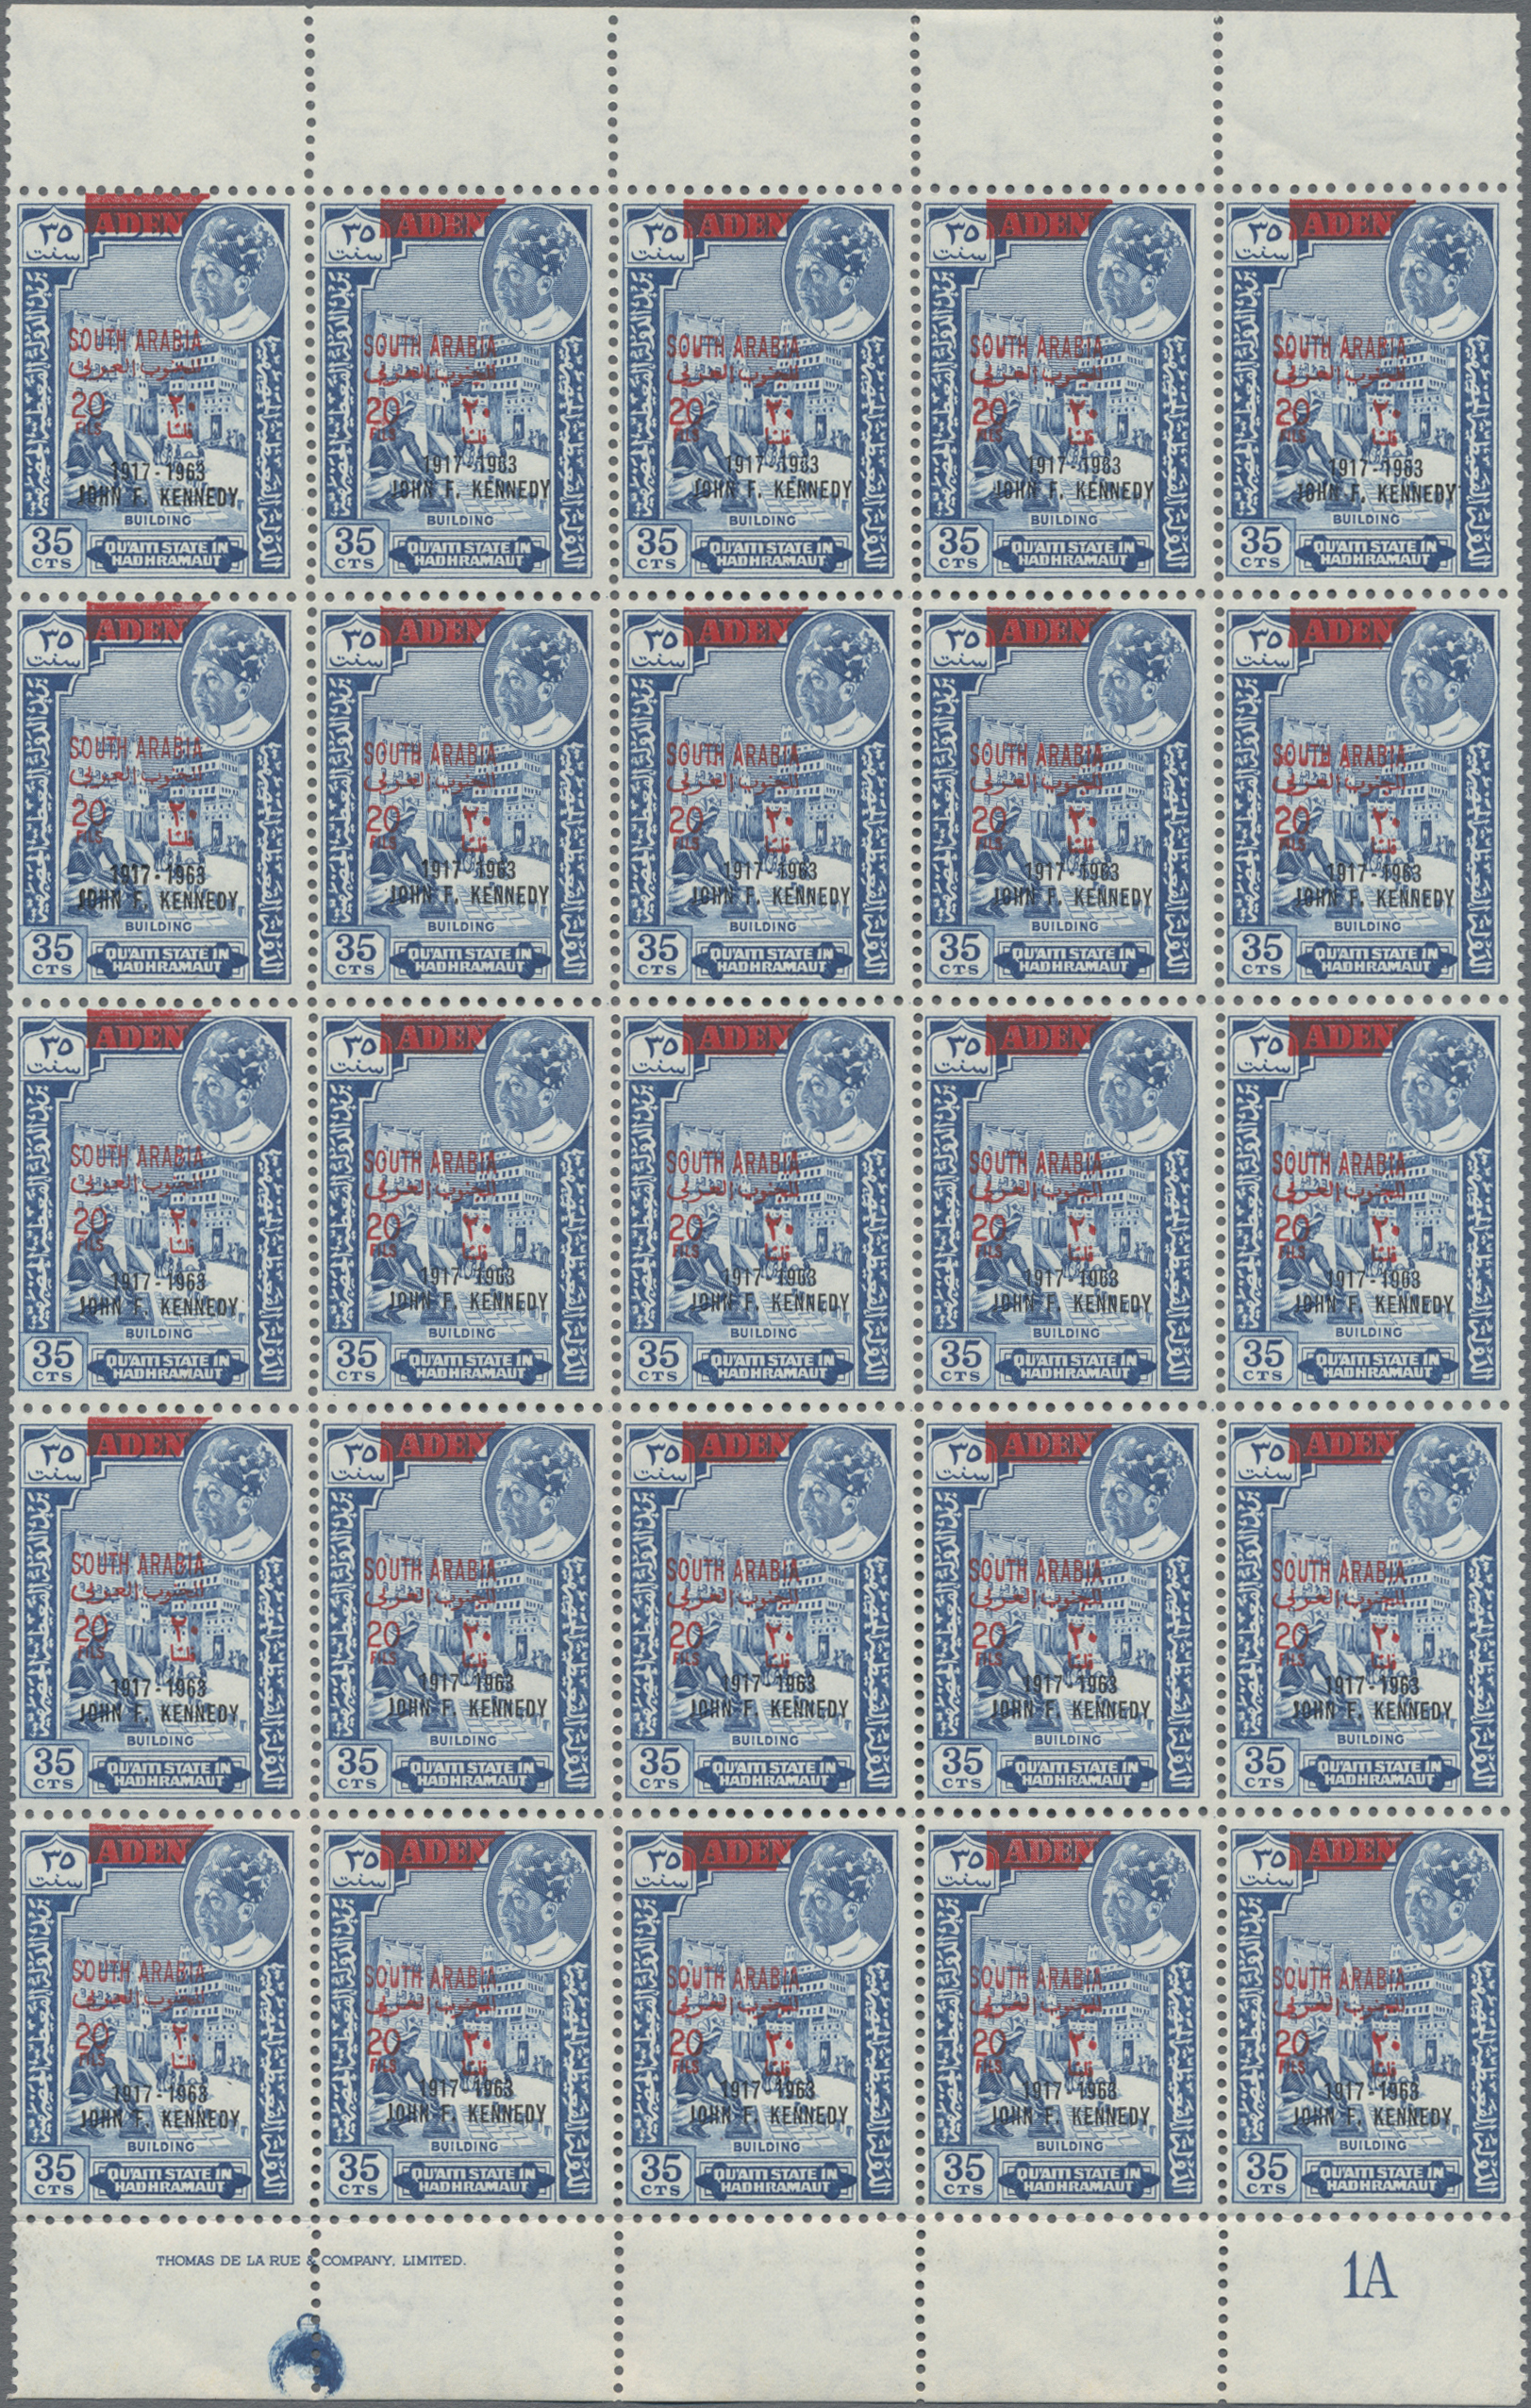 Lot 05005 - Aden - Qu'aiti State in Hadhramaut  -  Auktionshaus Christoph Gärtner GmbH & Co. KG Sale #49 Single lots Asia, Thematics, Oversea, Europe, Old German States, Third Reich, German Colonies and the Federal Republic of Germany